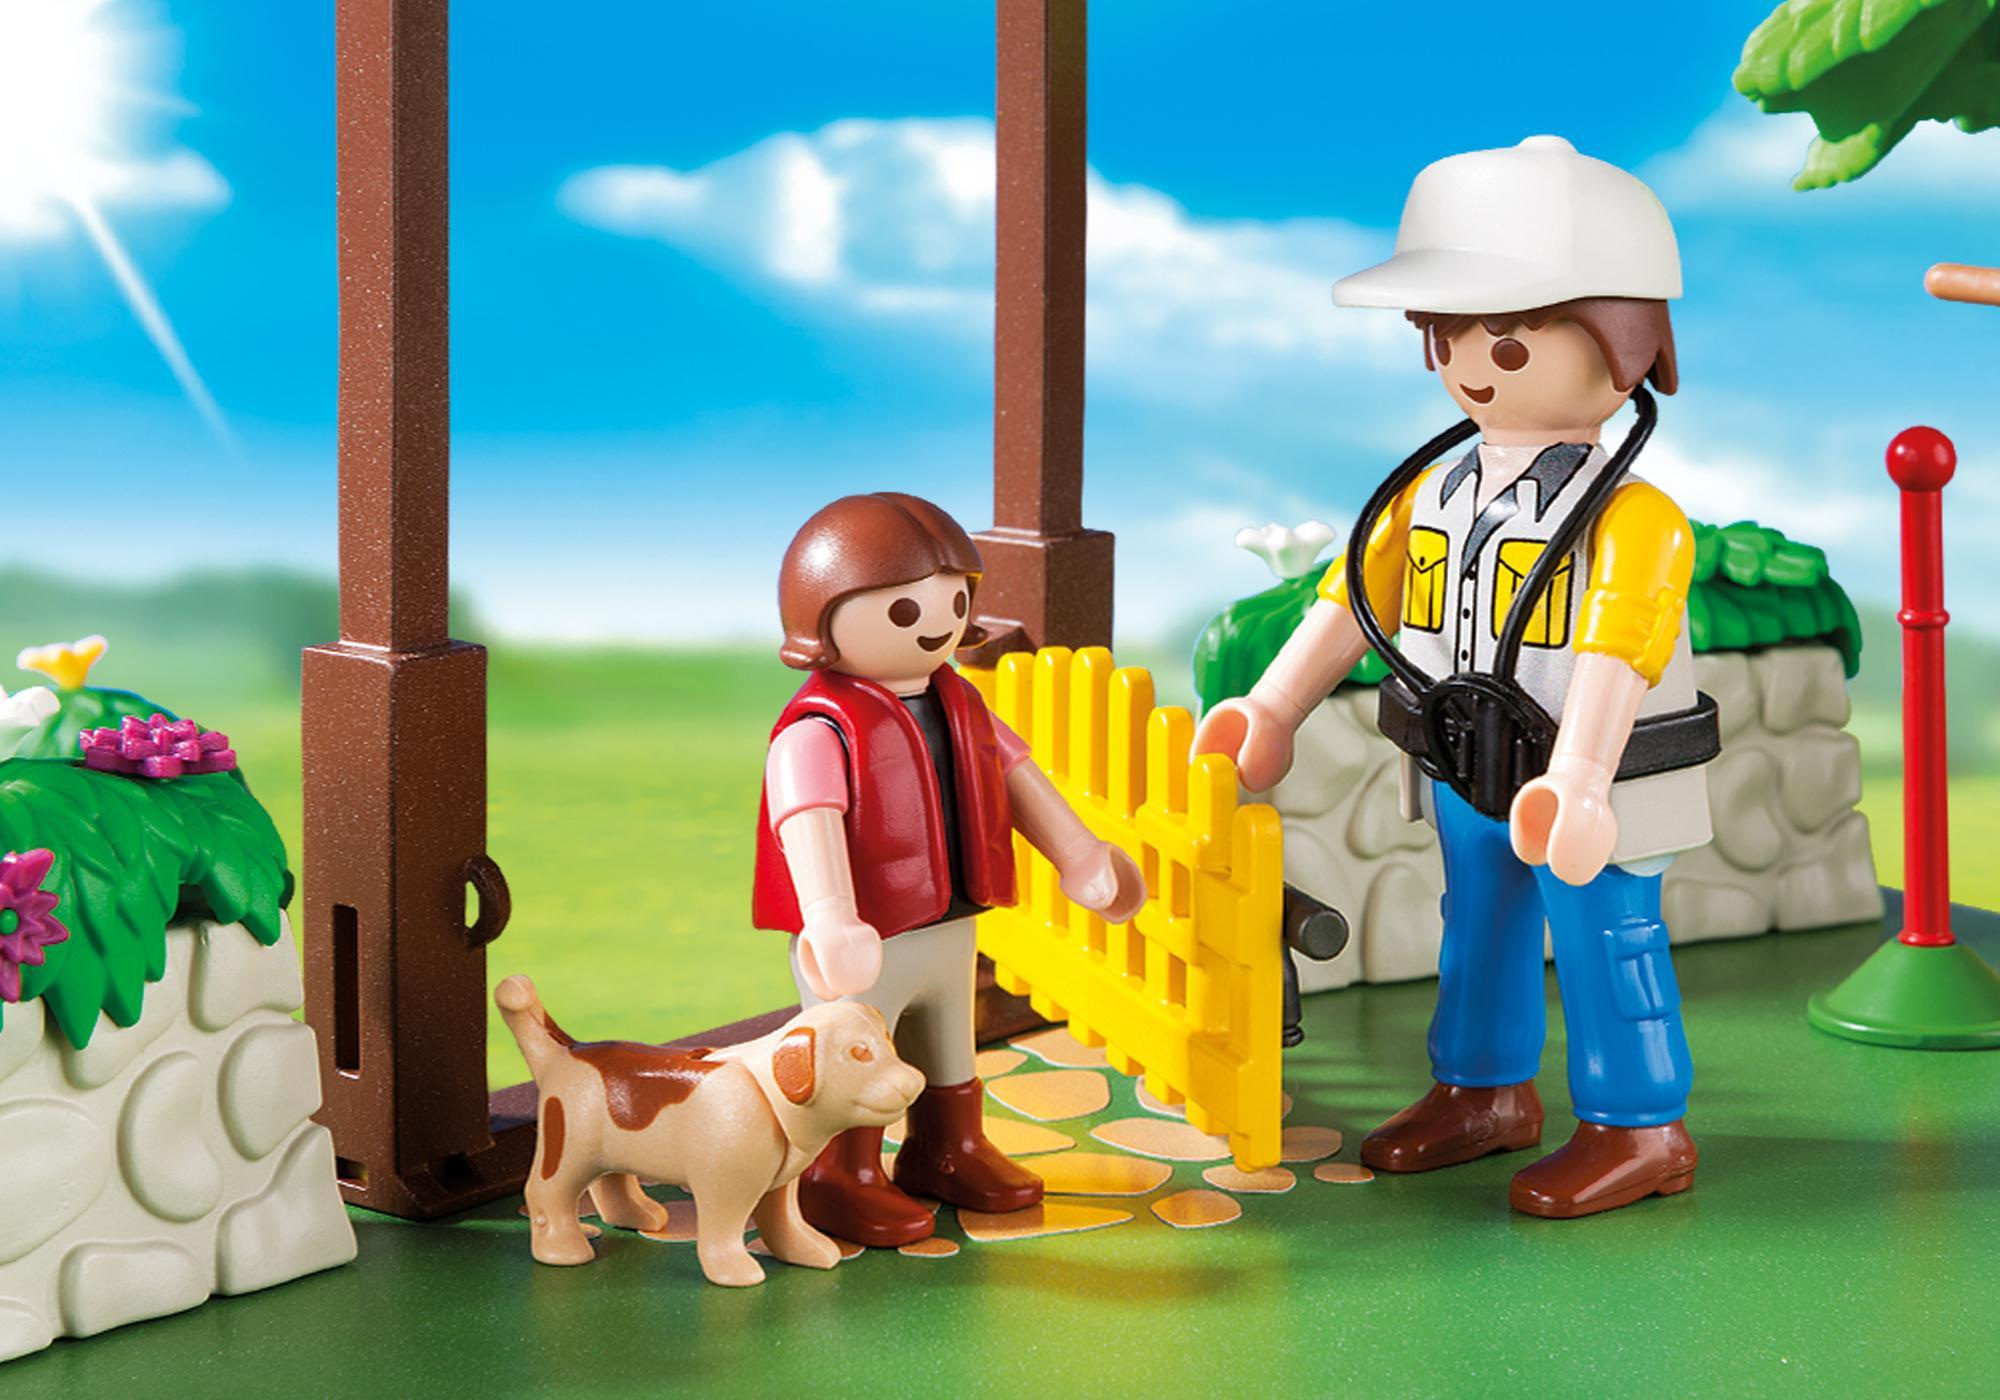 http://media.playmobil.com/i/playmobil/6145_product_extra1